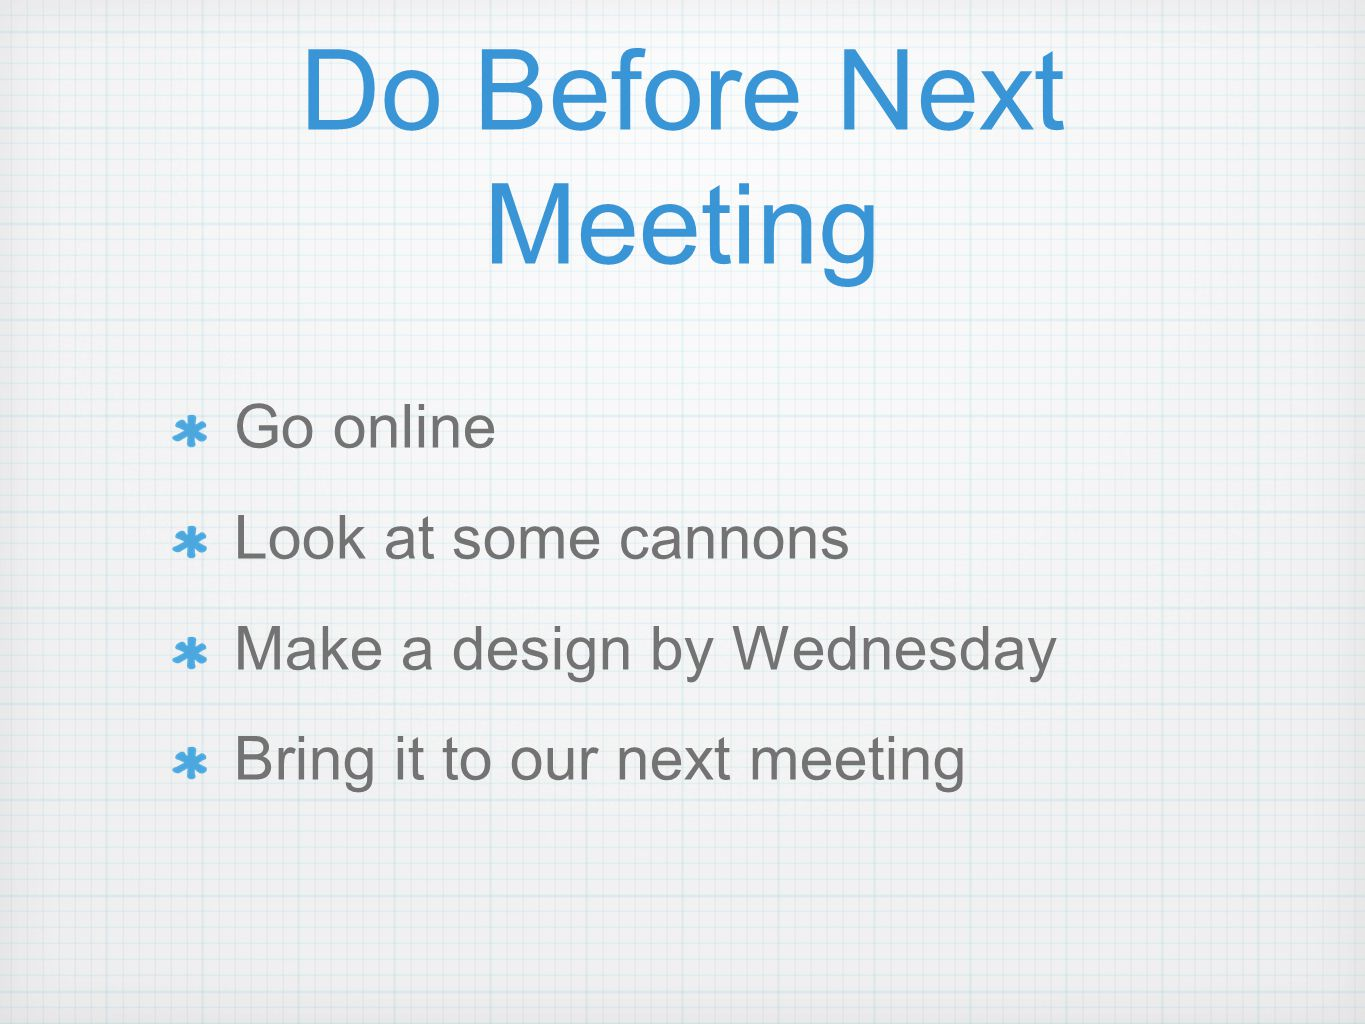 Do Before Next Meeting Go online Look at some cannons Make a design by Wednesday Bring it to our next meeting